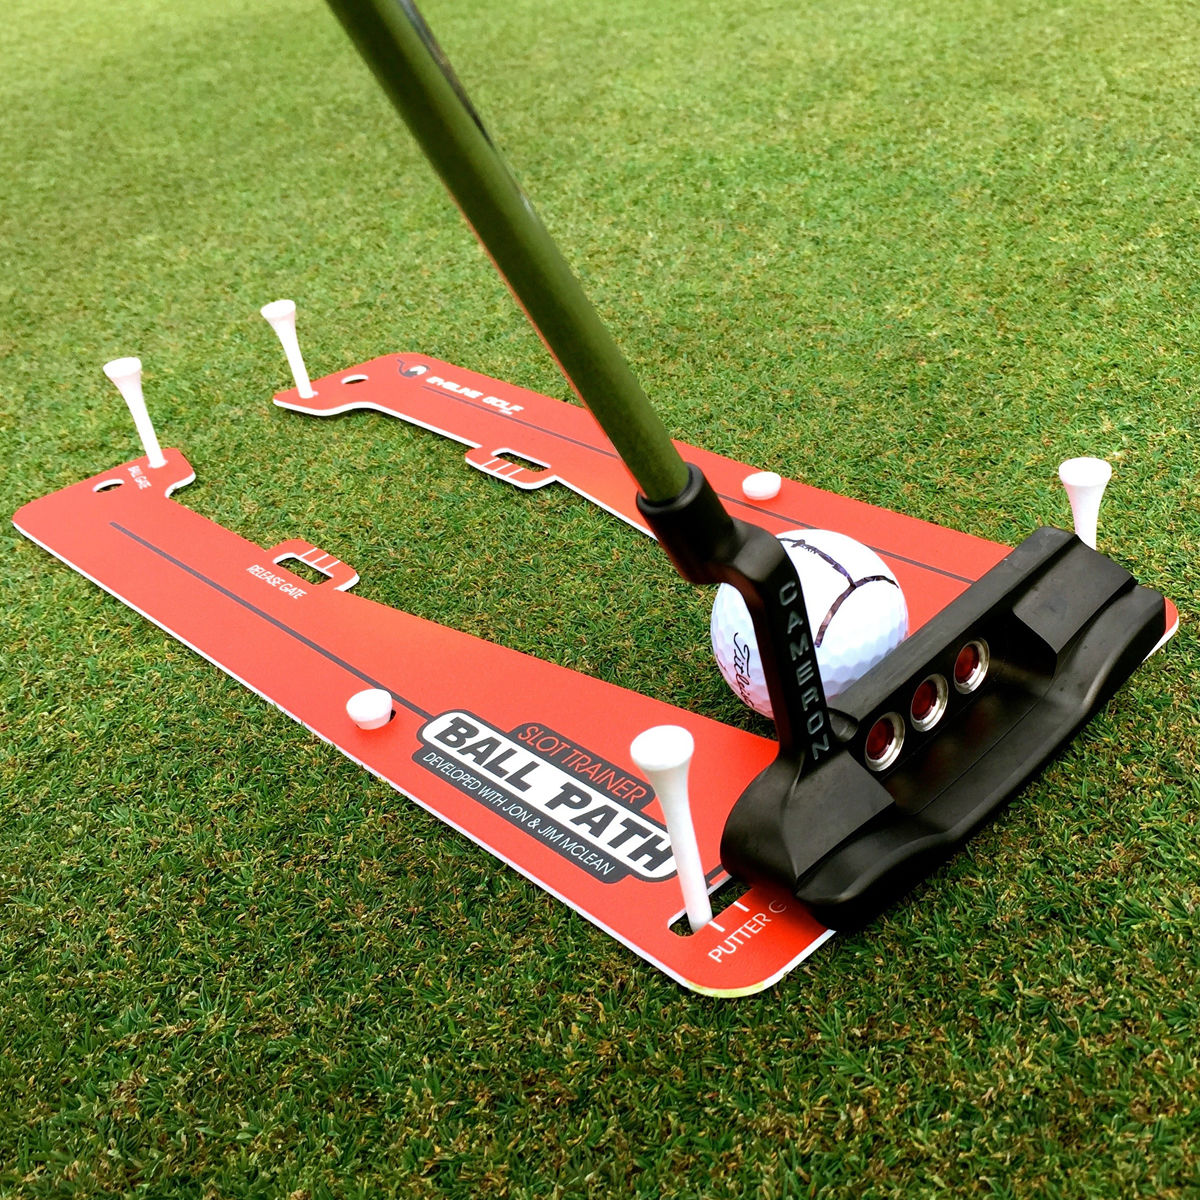 EyeLine Golf - Slot Trainer Pair - Event Stuff Ltd Owns Putterfingers.com!